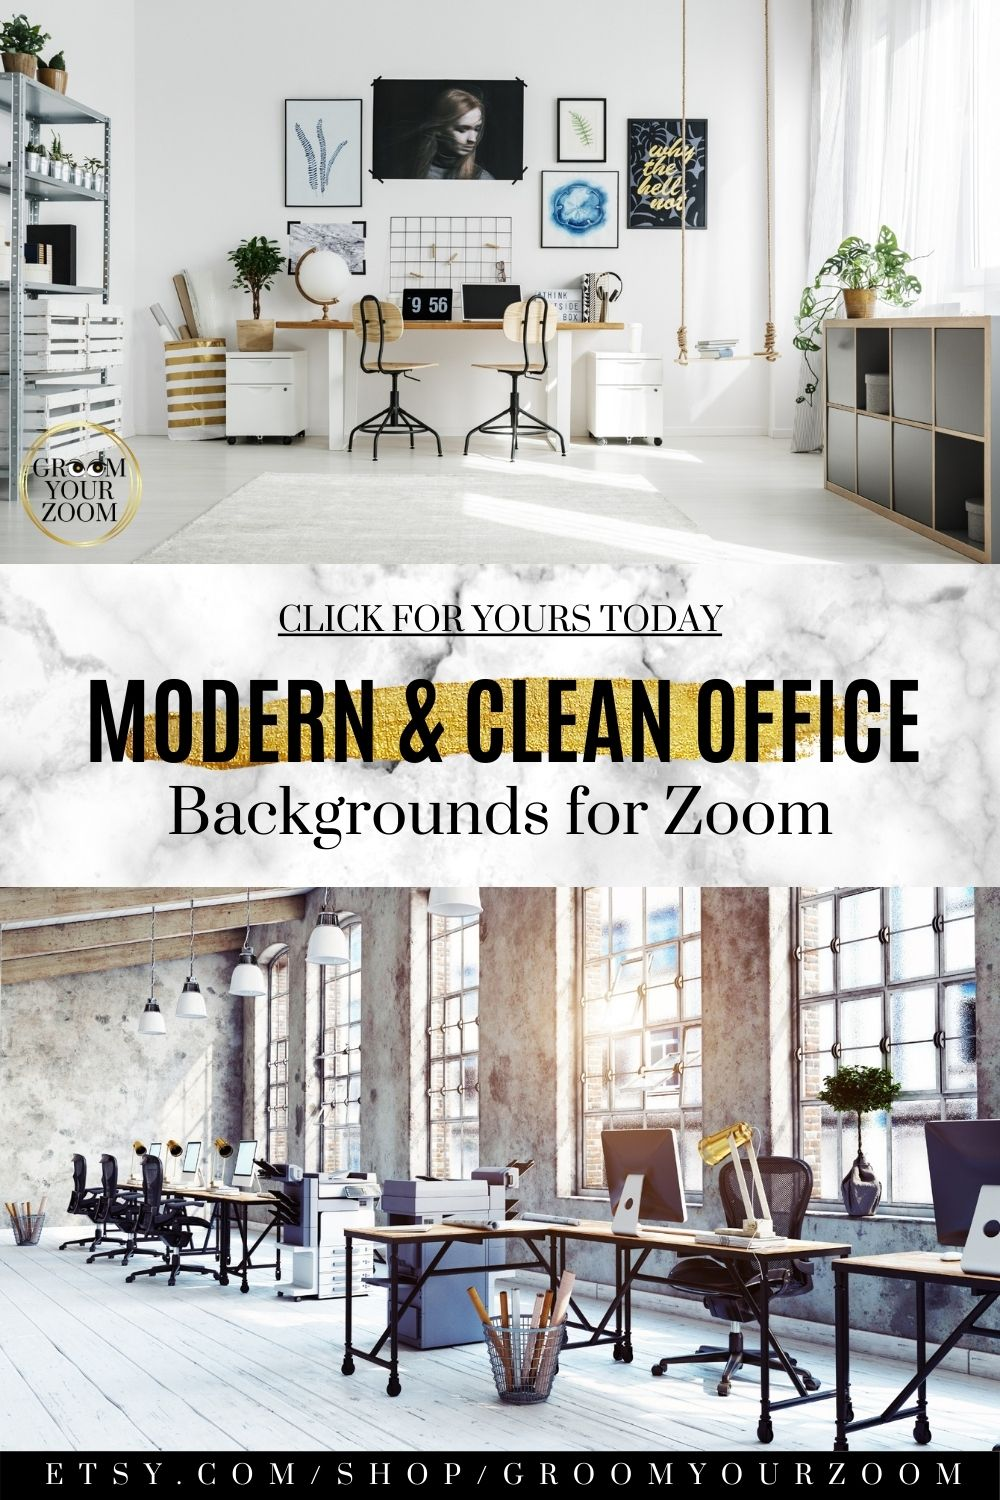 Open Office Zoom Background 4 Virtual Photos For Video Call Professional Background Online School Stock Photo Digital Download Open Office Clean Office Modern